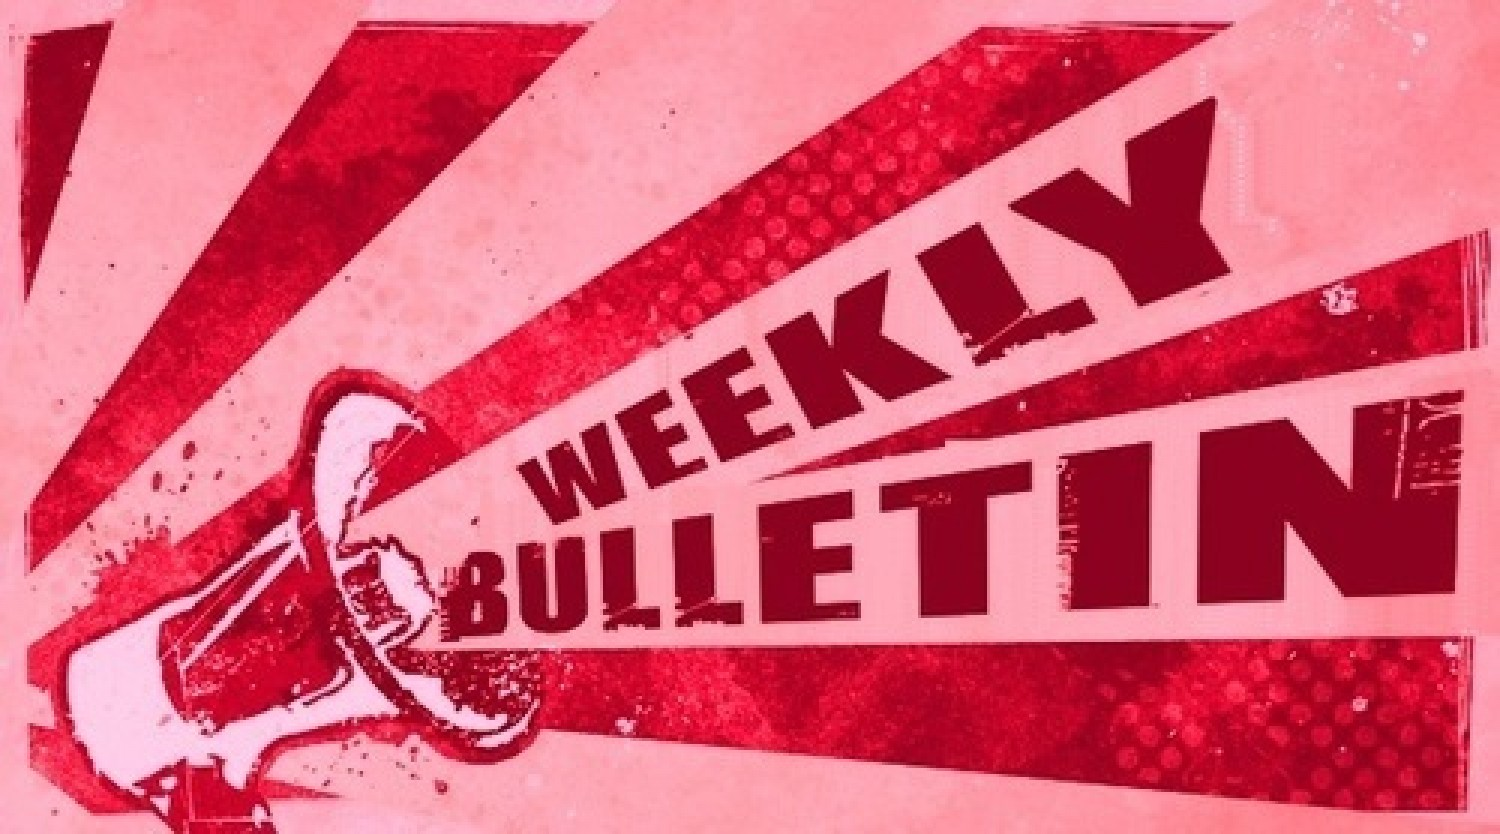 Weekly Bulletin February 8th